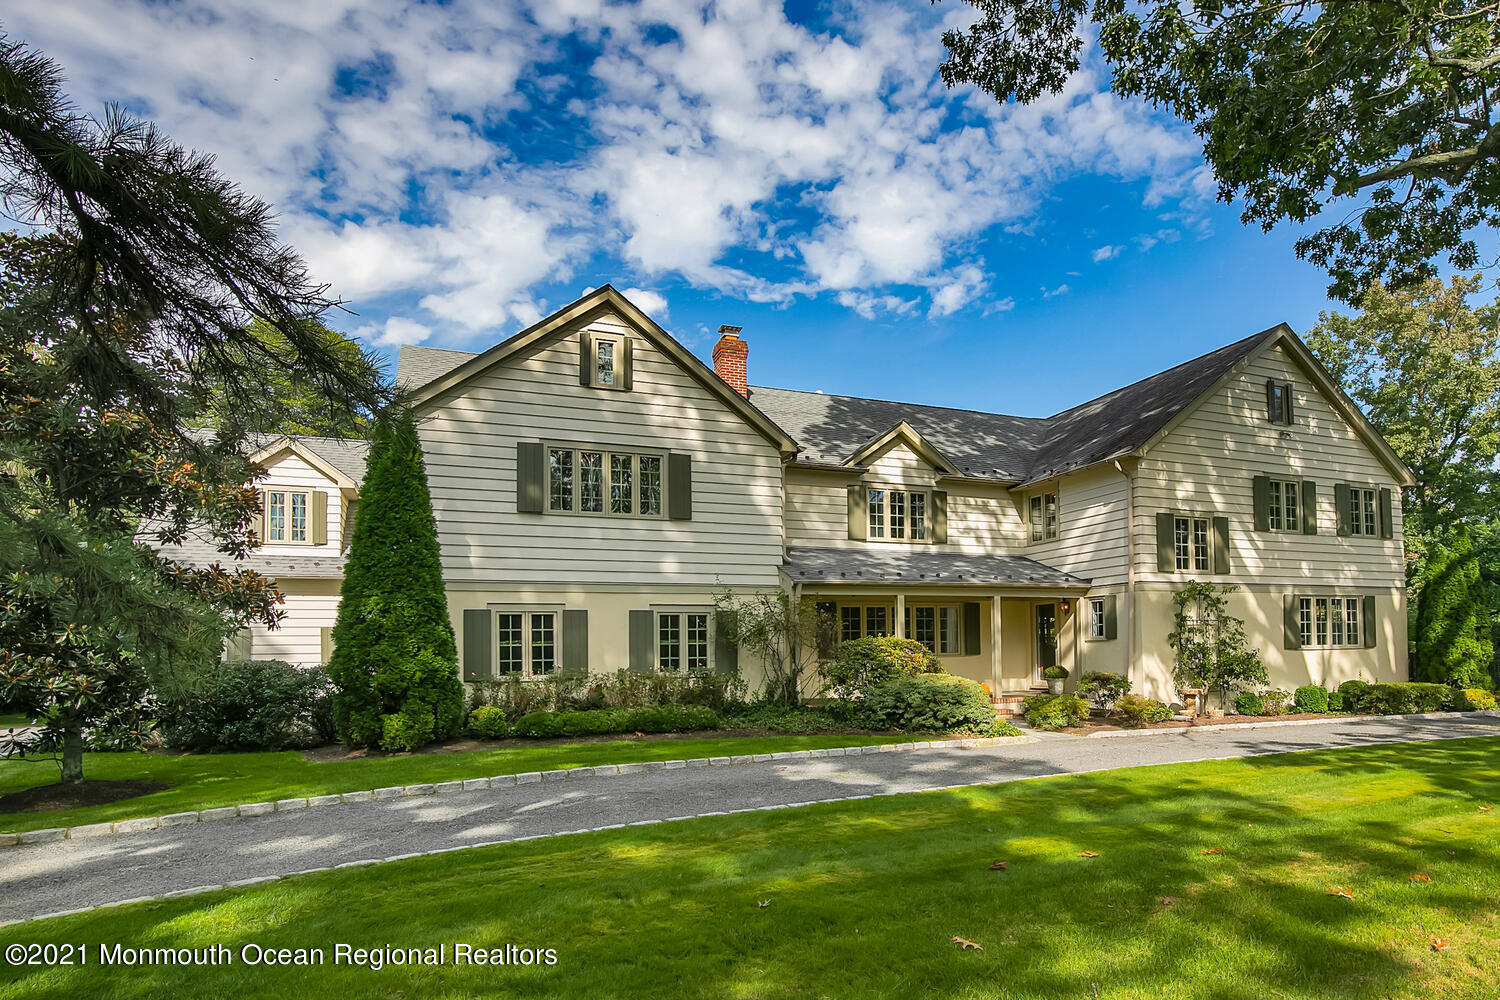 162 Black Point Road, Rumson, New Jersey 07760, 4 Bedrooms Bedrooms, ,5 BathroomsBathrooms,Single Family,For Sale,162 Black Point Road,2,22133354